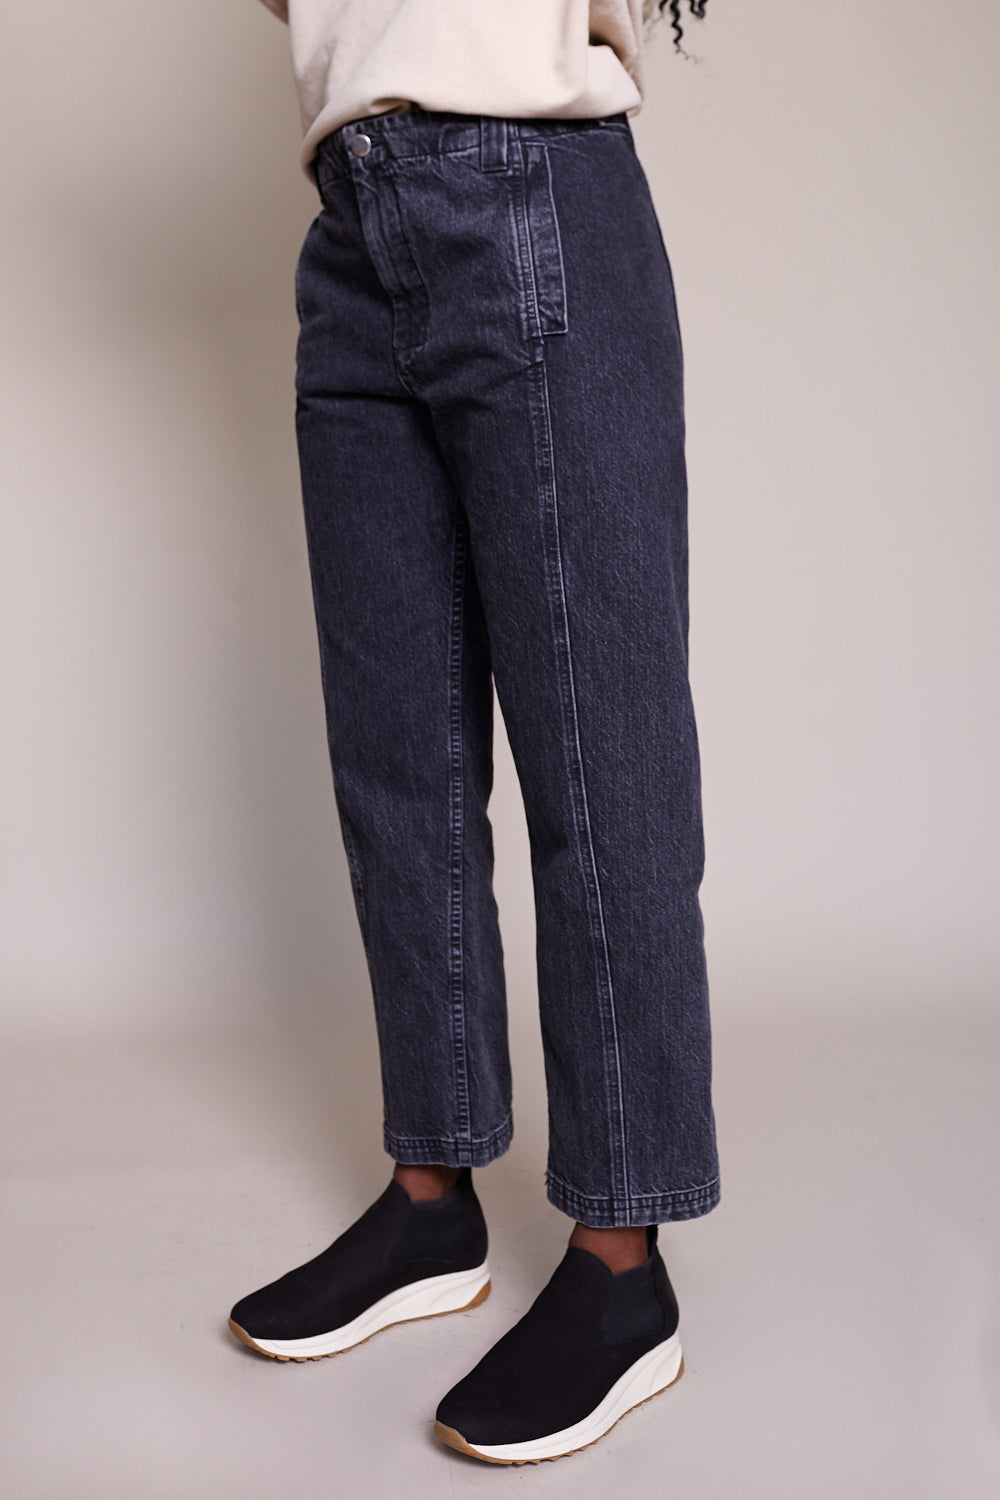 Rachel Comey Steer Pant in Washed Black - Vert & Vogue